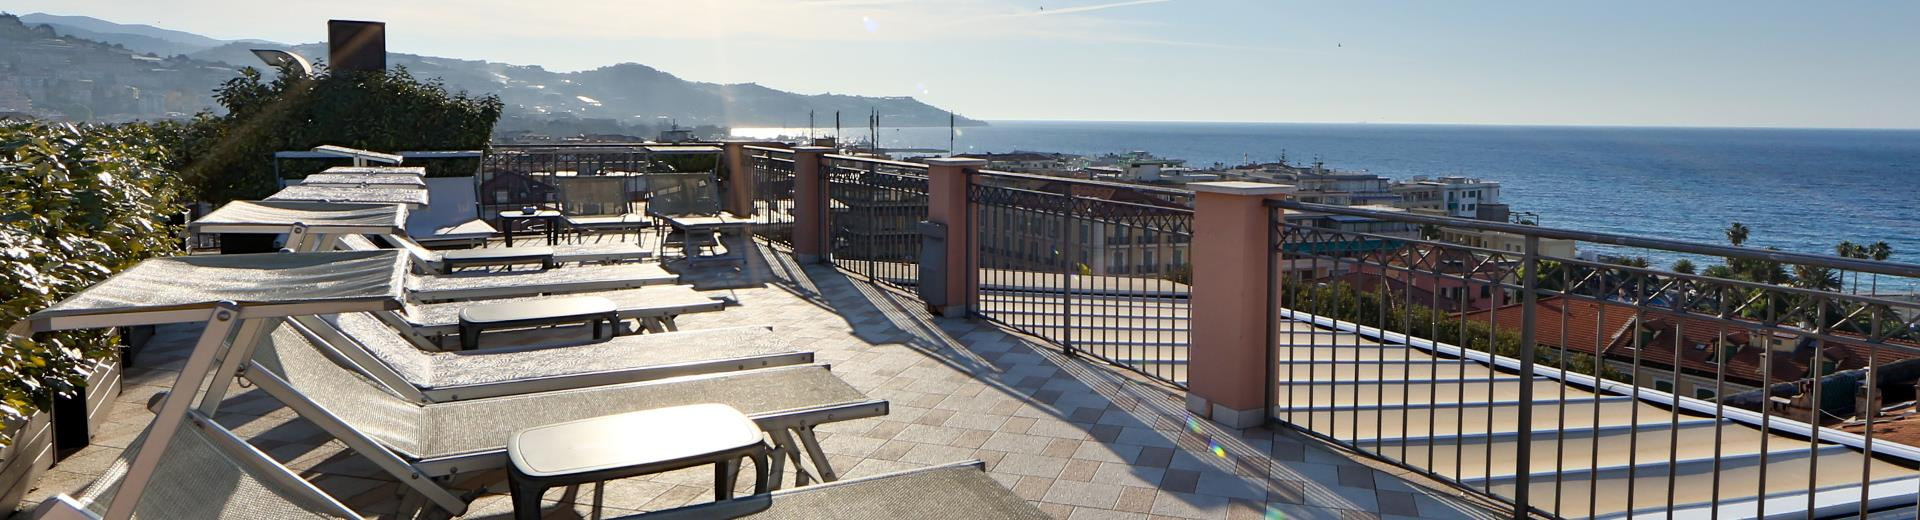 Awesome Residence Le Terrazze Sanremo Pictures - Idee Arredamento ...